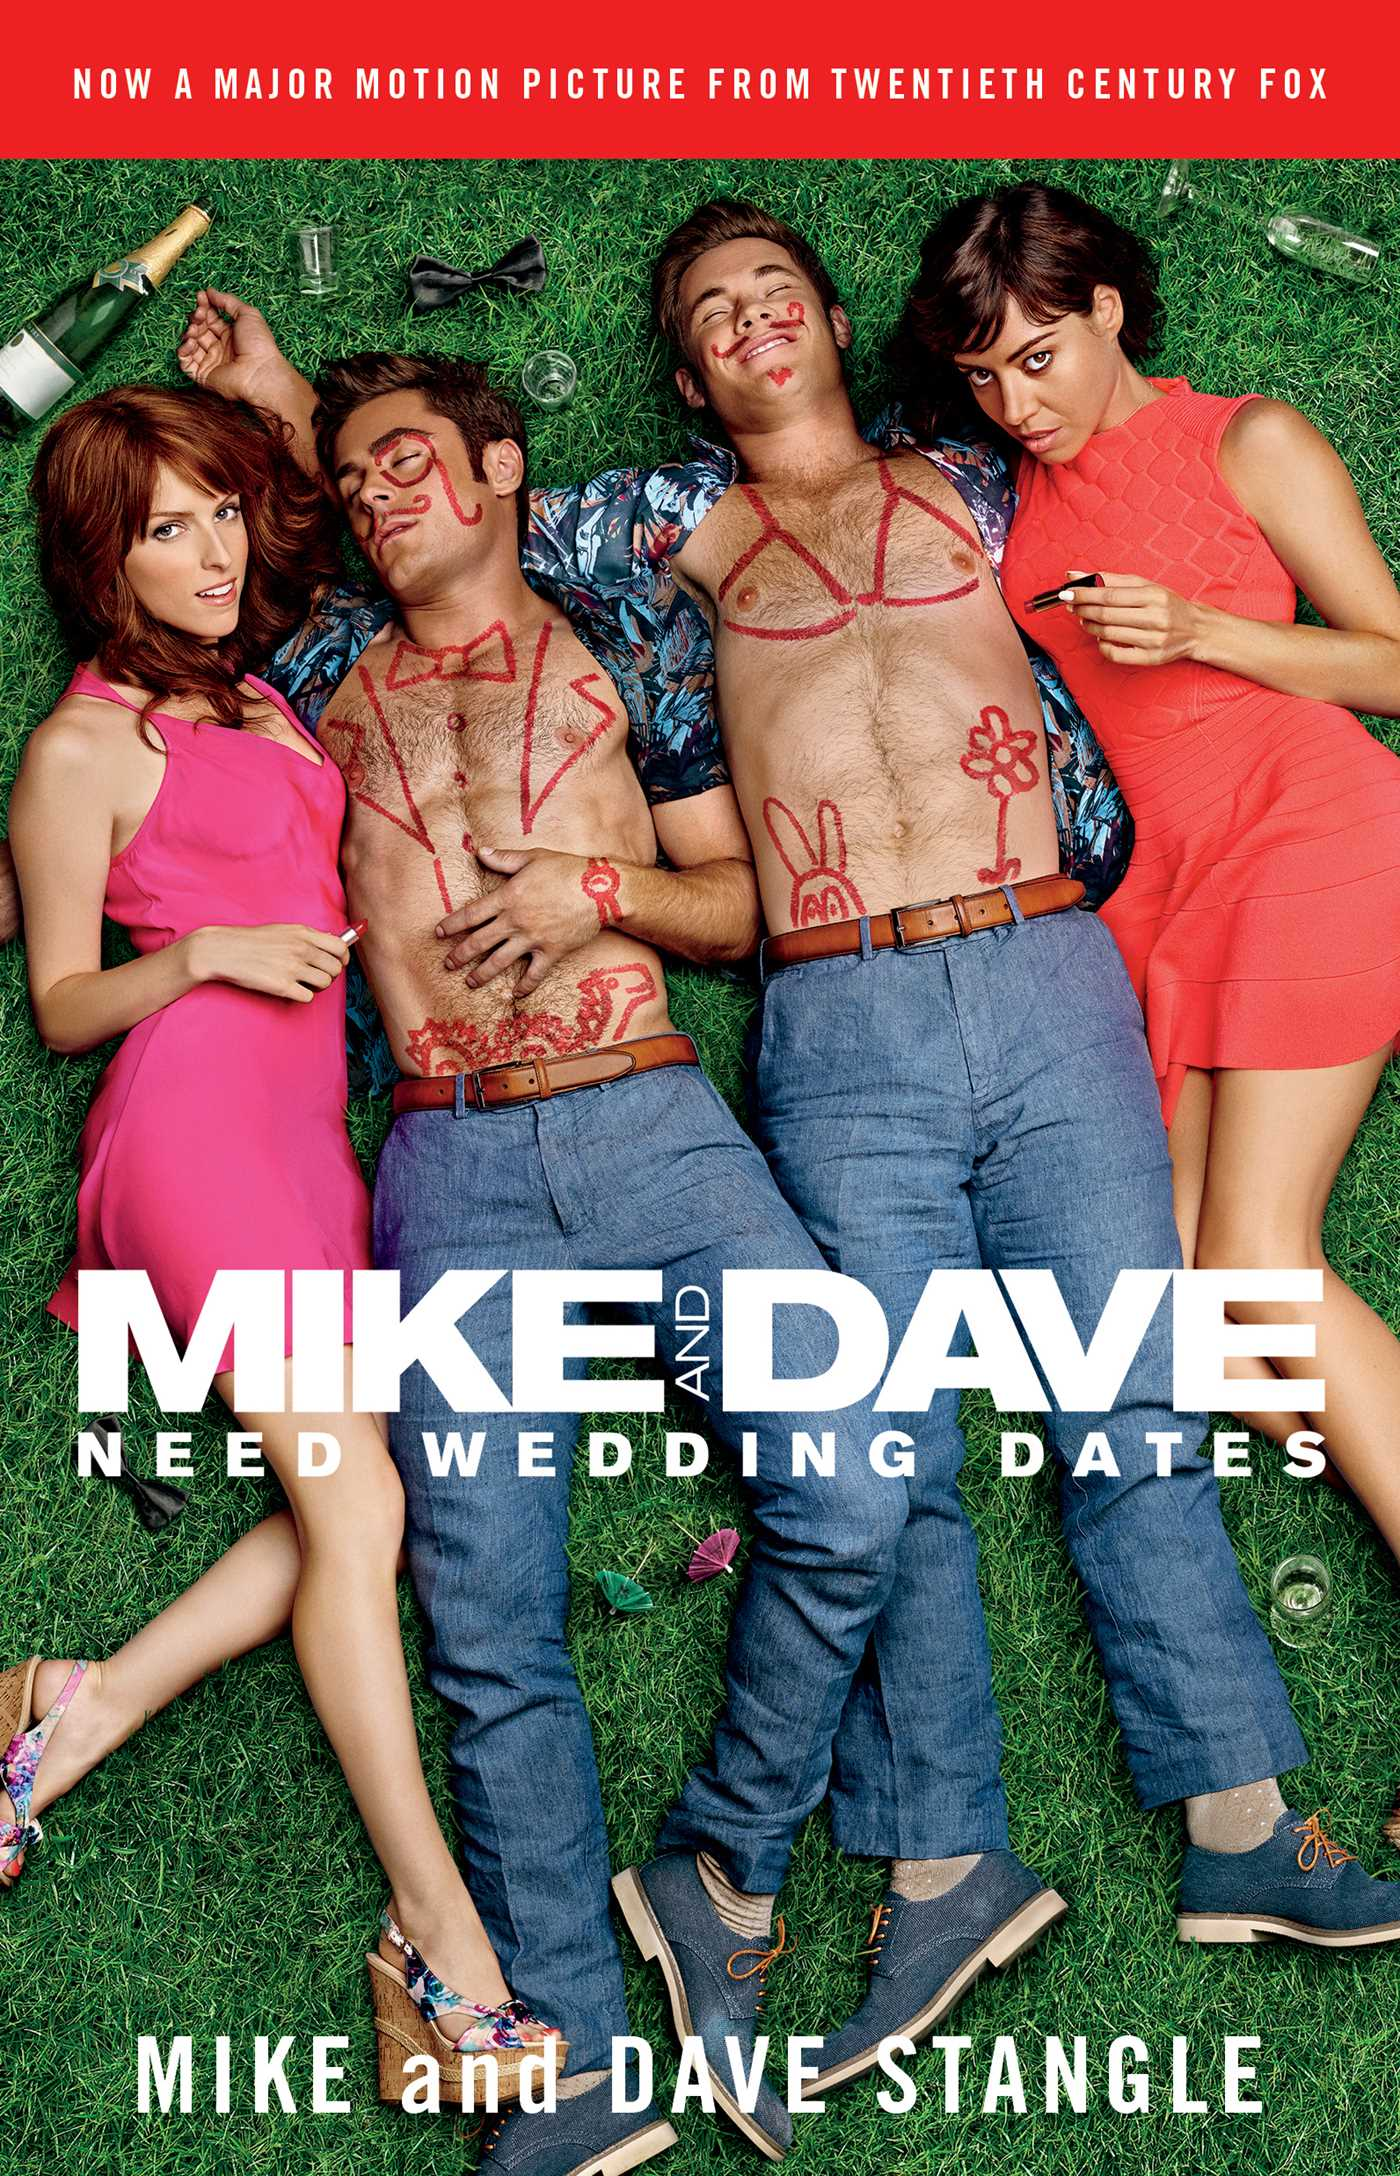 Mike and dave need wedding dates 9781501157097 hr